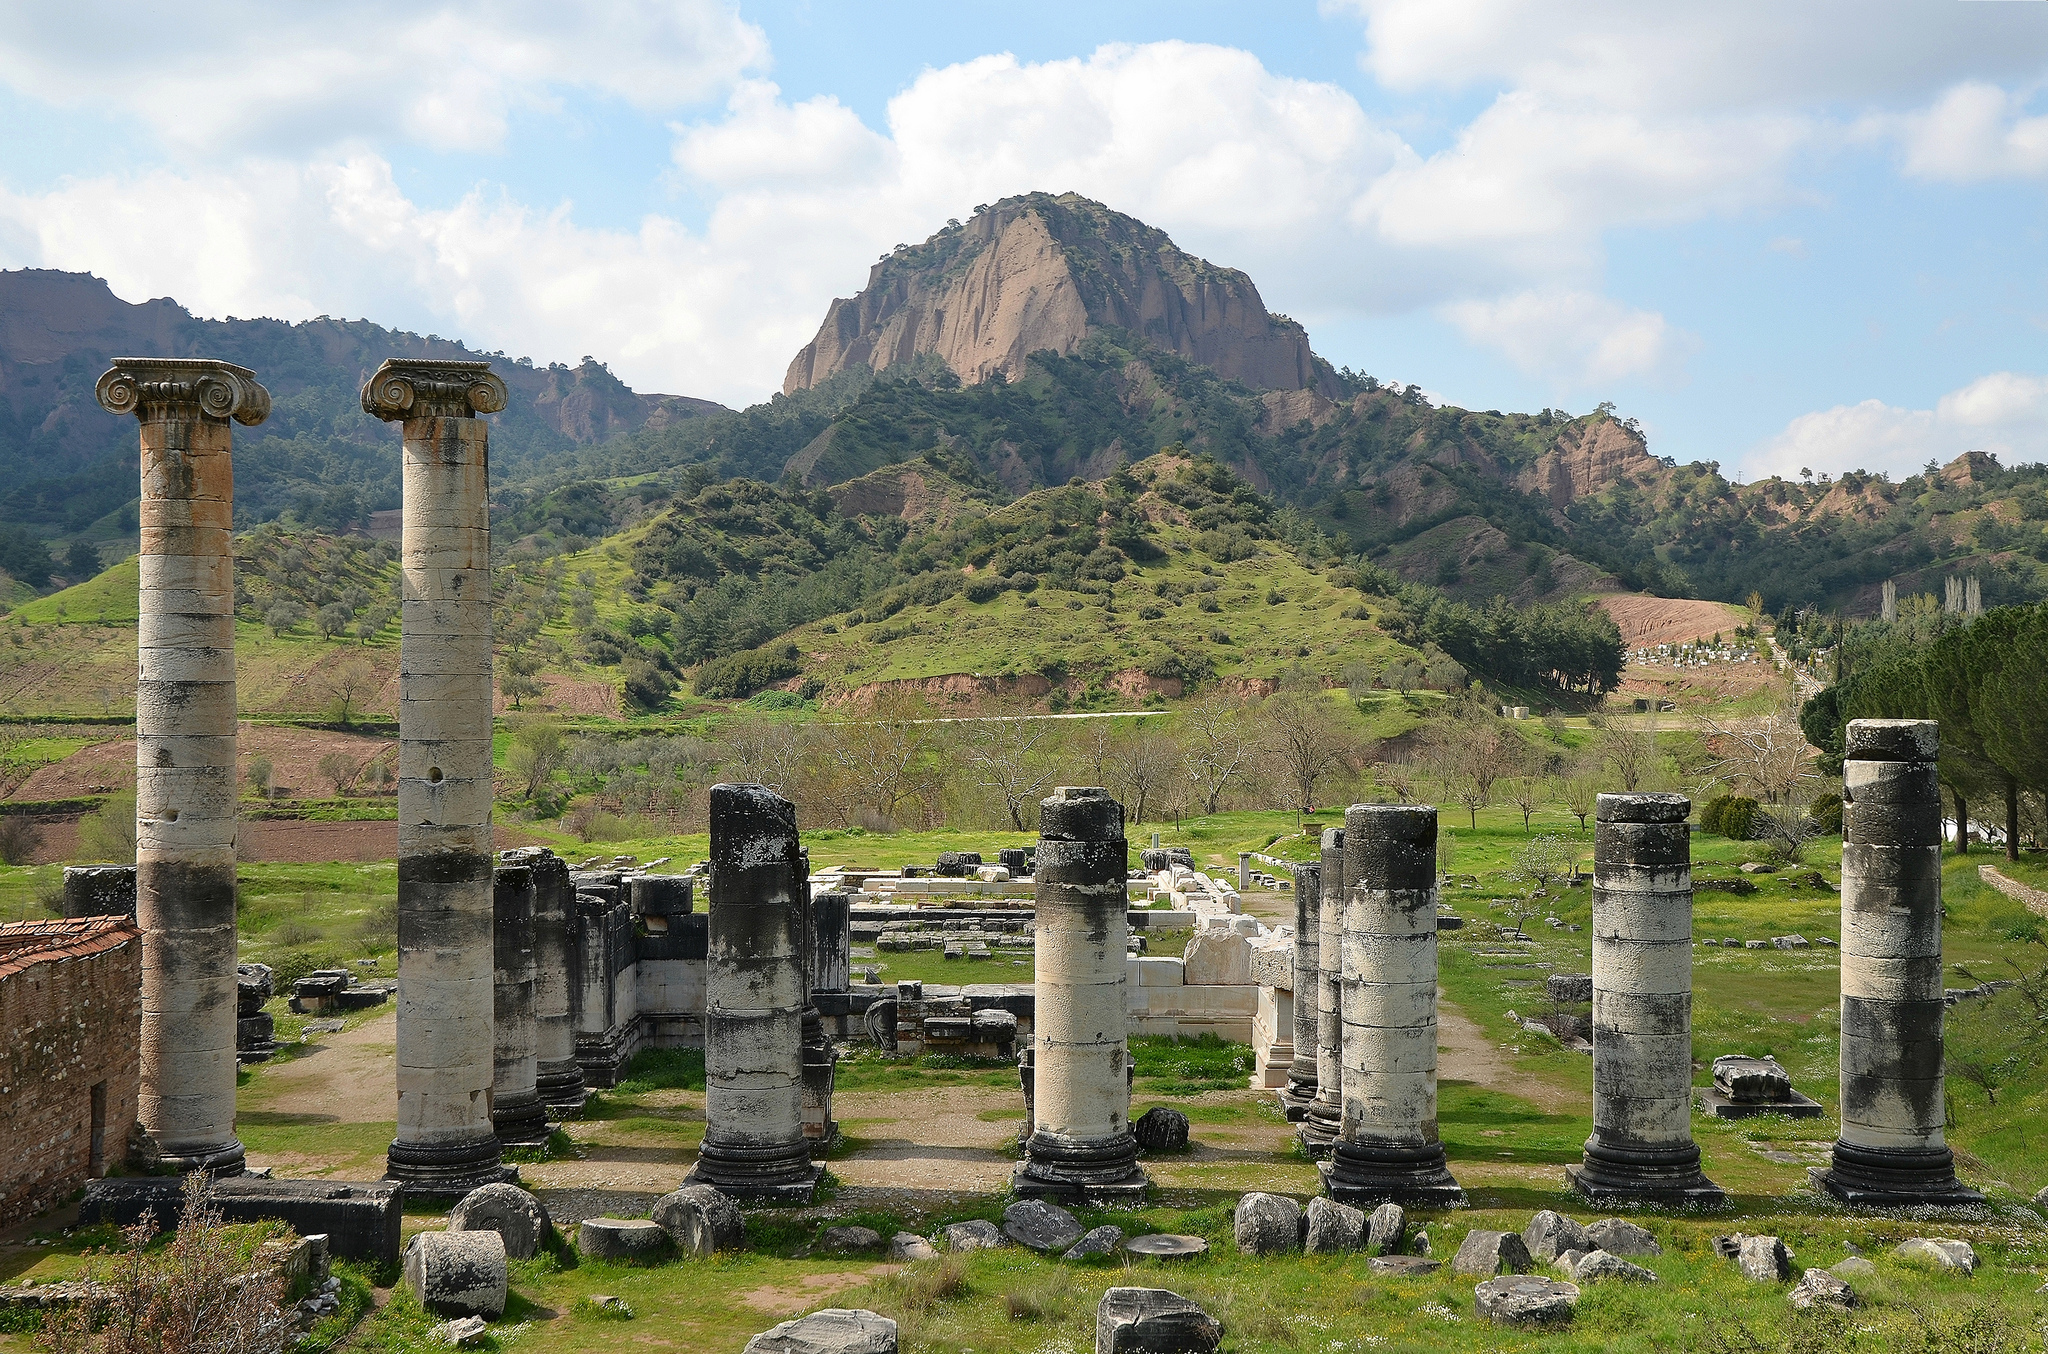 The ruins of the Temple of  Artemis in  Sardis in  Lydia (modern-day western  Turkey), originally built by the Greeks in 300 BCE and later renovated by the Romans in the 2nd century CE. The Temple of Artemis in Sardis was the fourth largest Ionic temple in the ancient world. Photo © Carole Raddato.